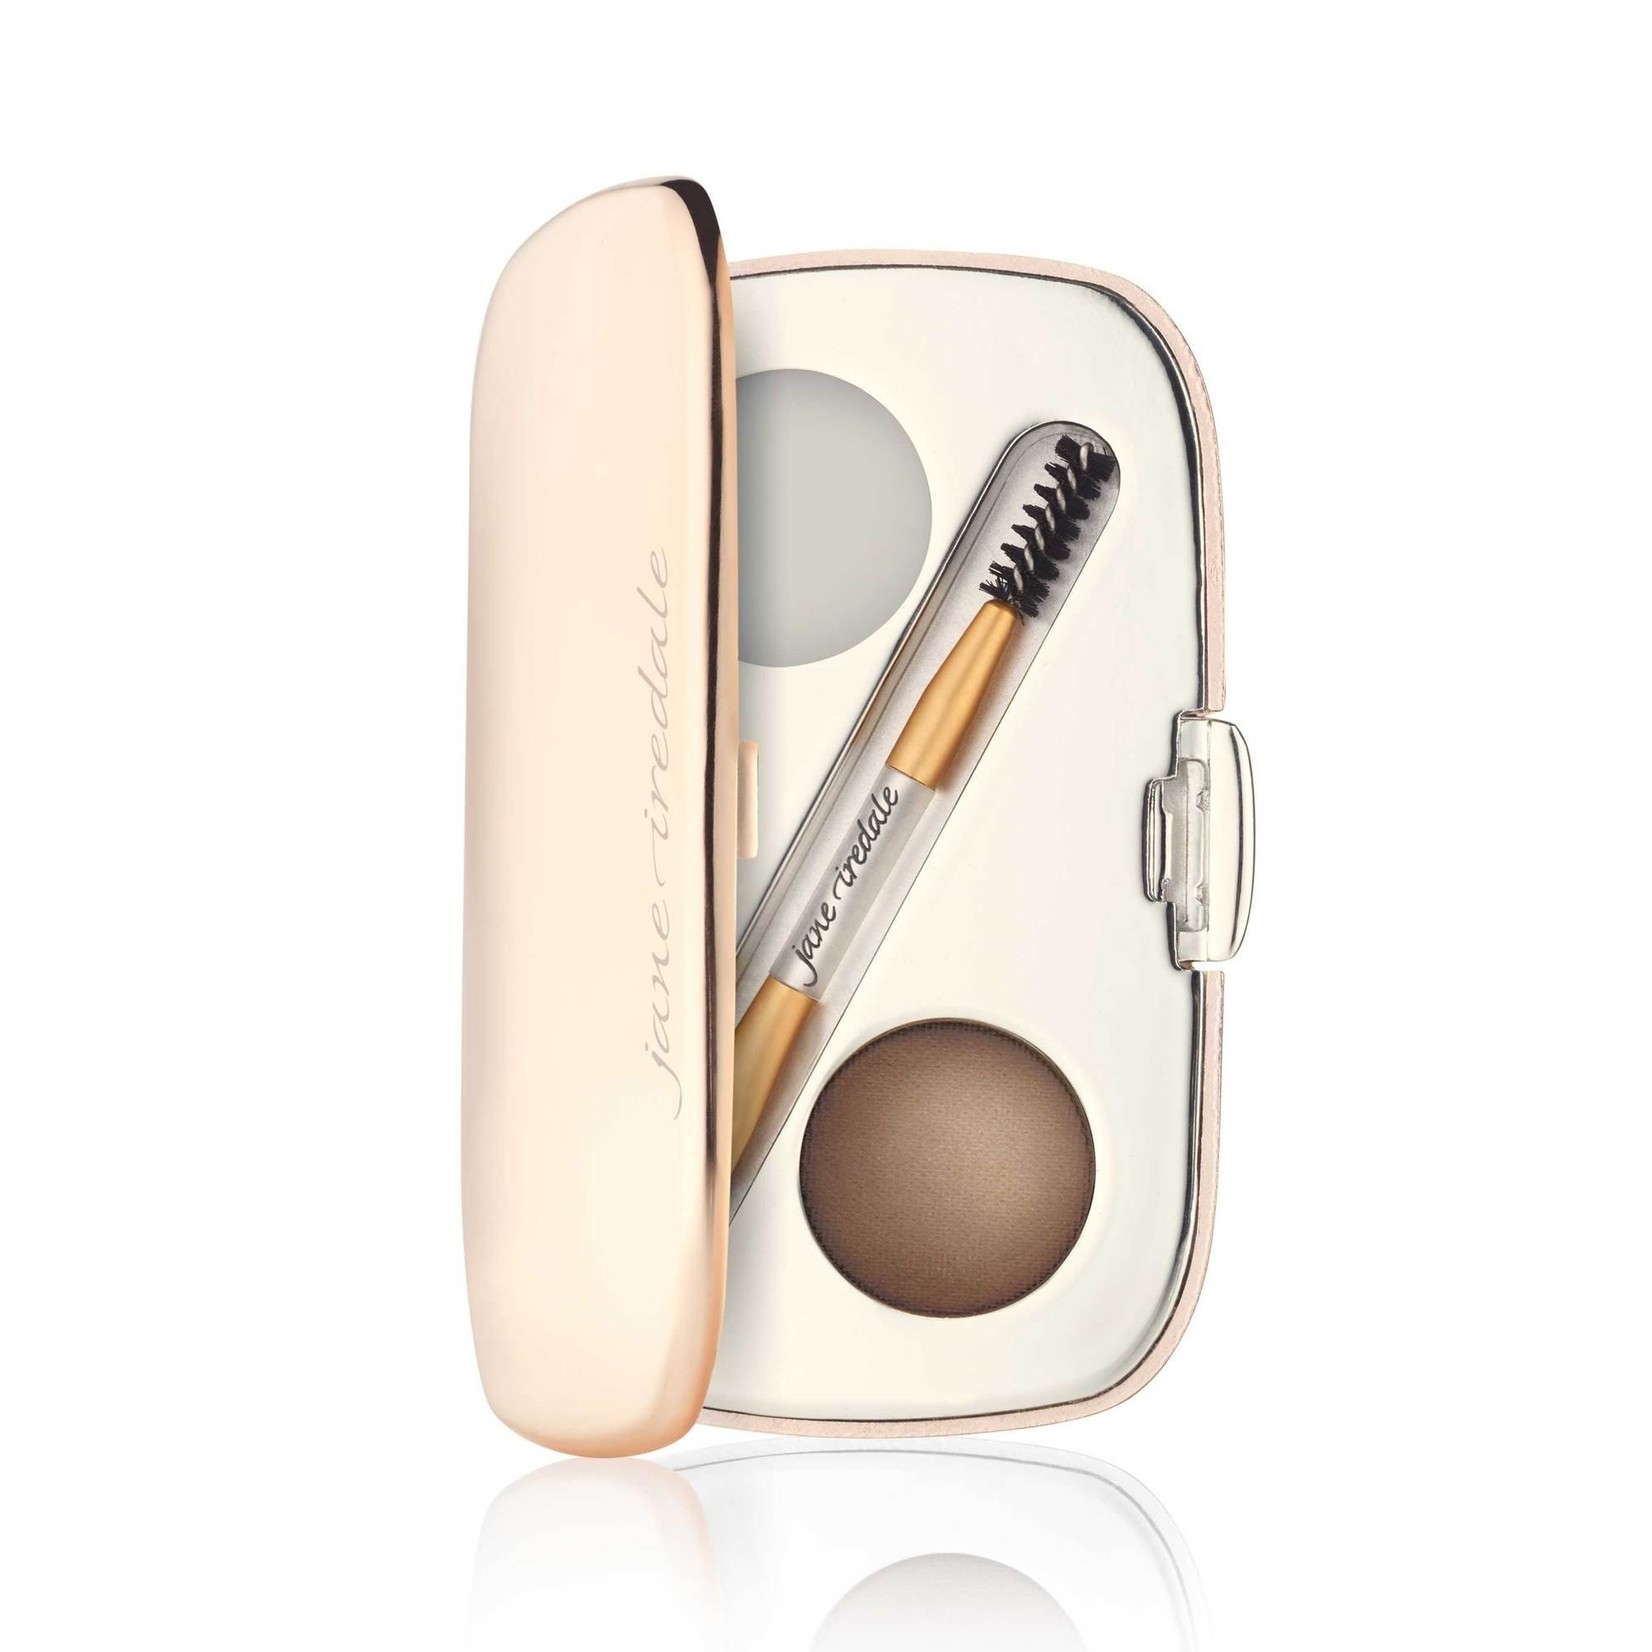 jane iredale Great shape eyebrow kit ash blonde